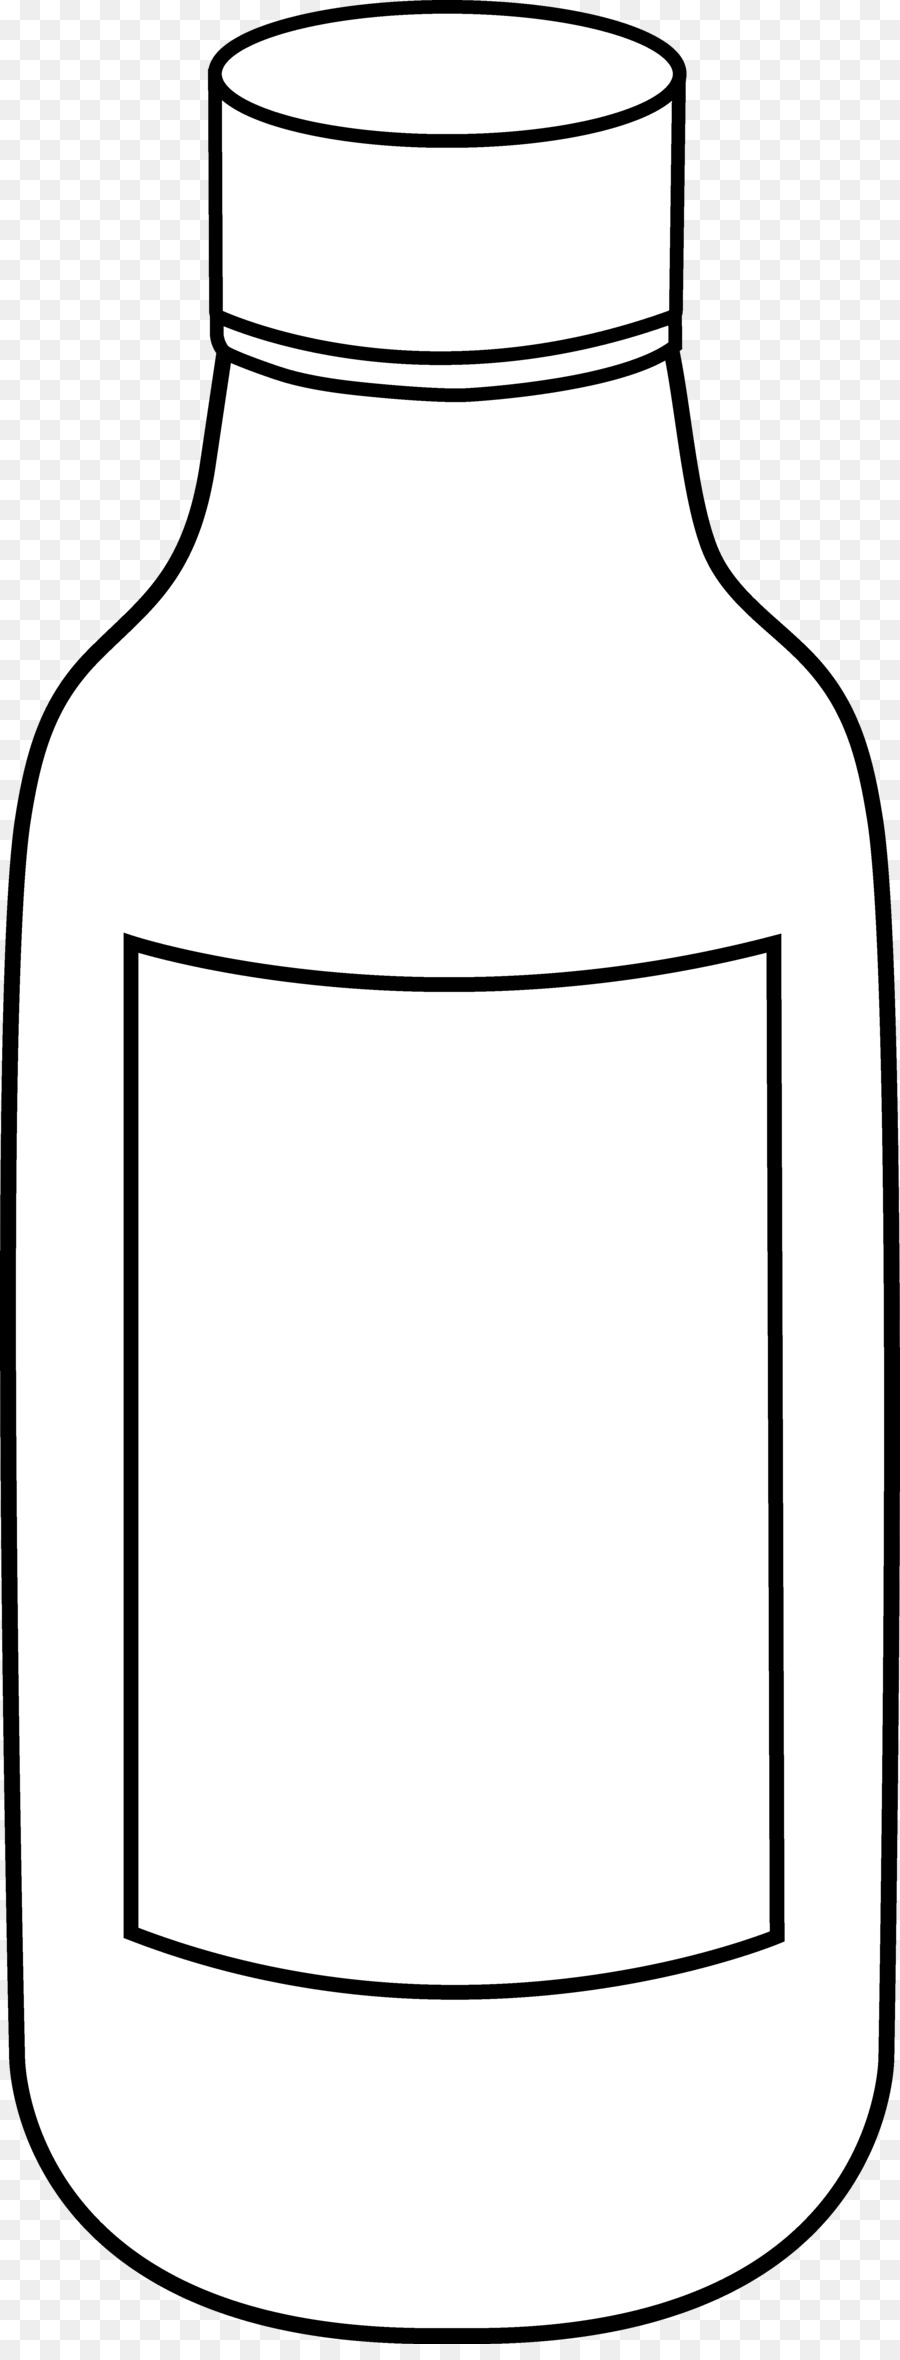 Line Art Bottle Black And White Drawing Clip